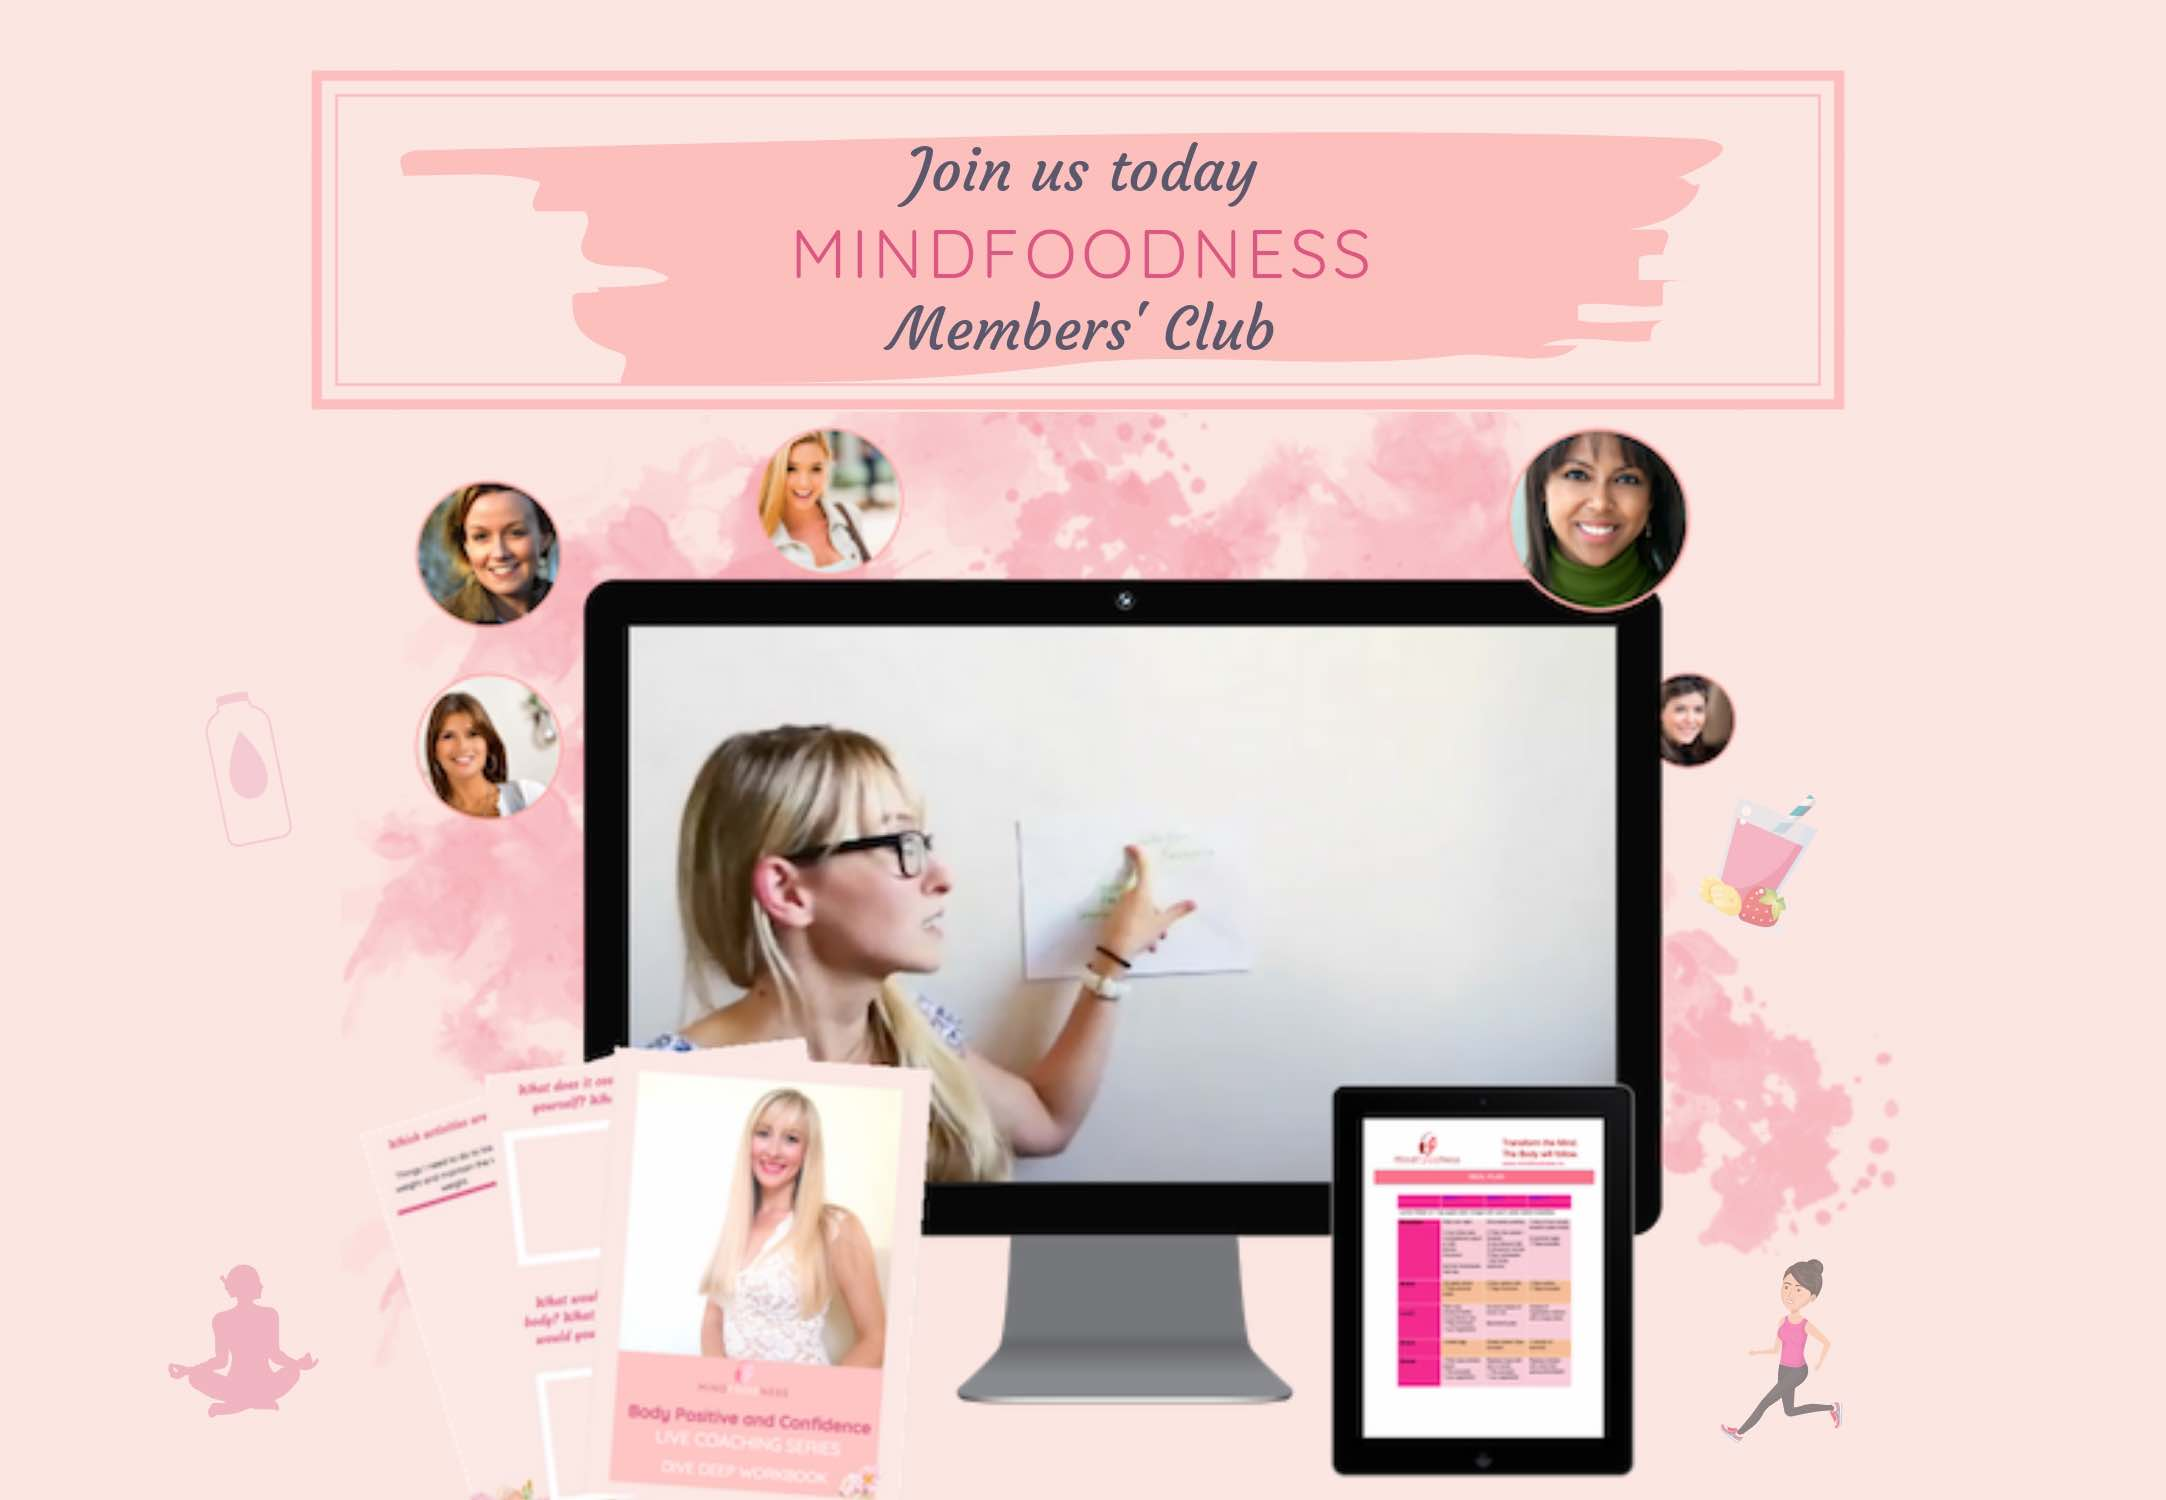 Mindfoodness Member's Club